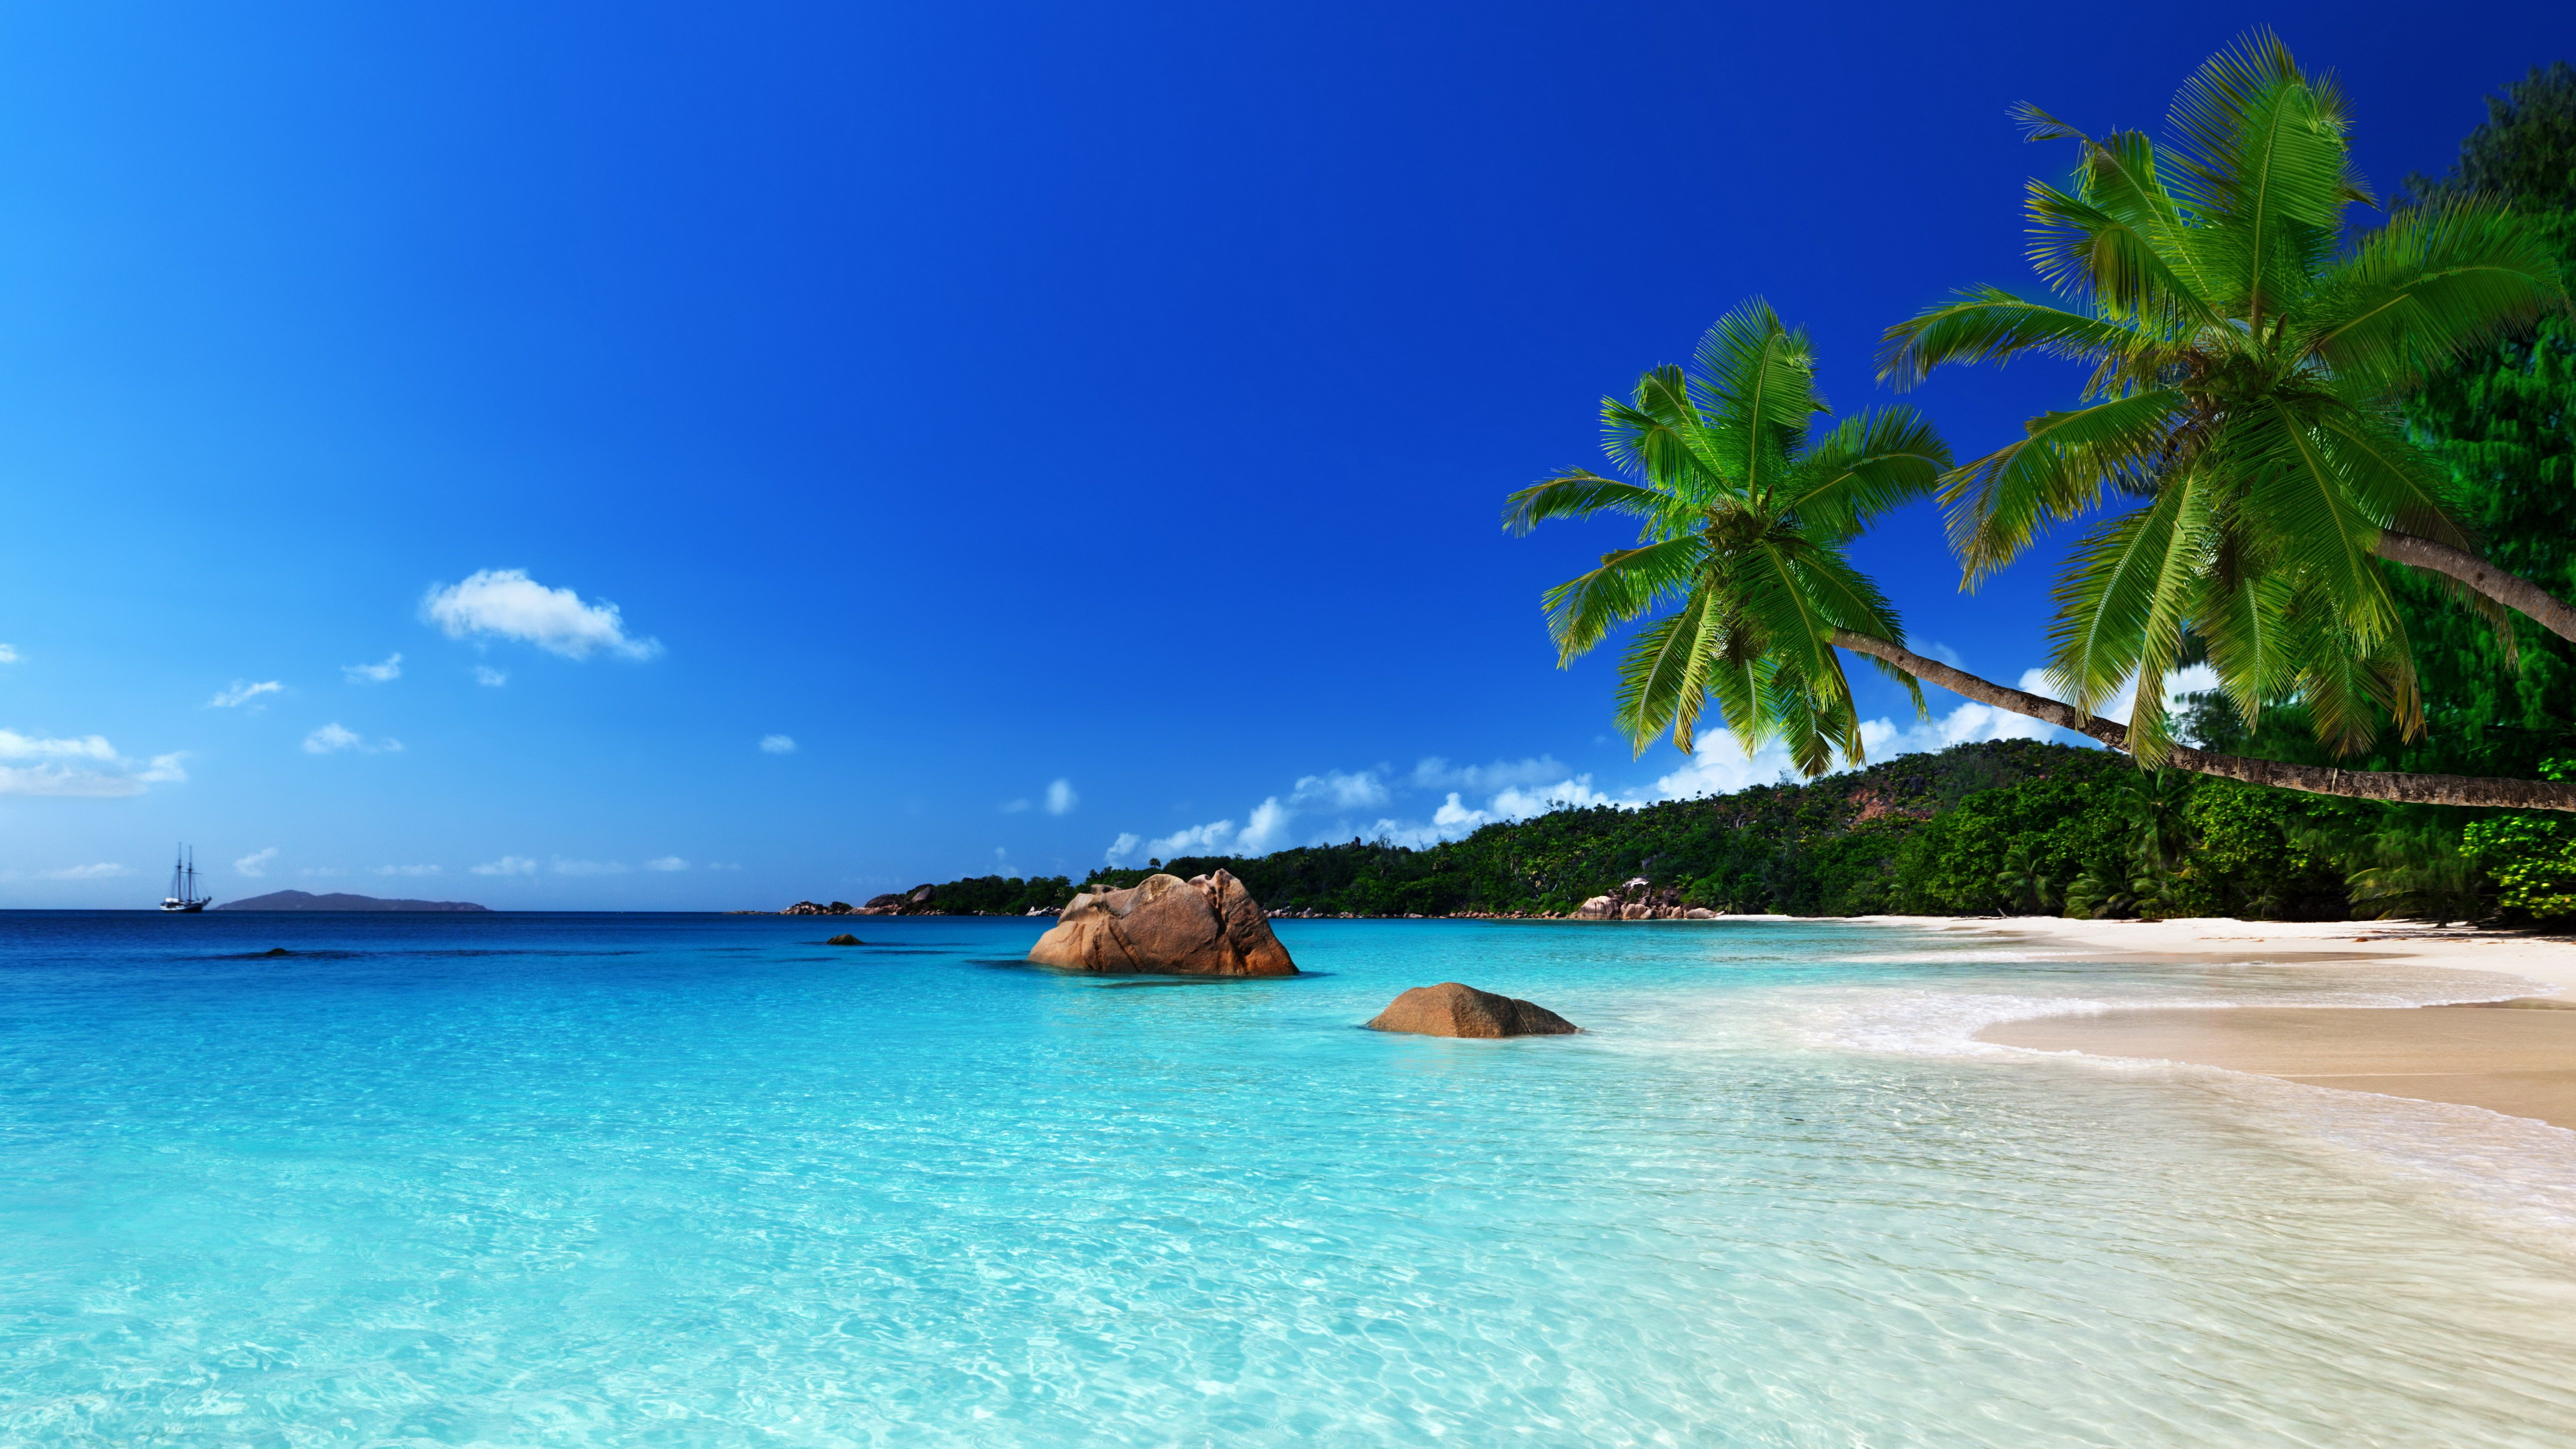 Tropical Beach Paradise Backgrounds: Scenery Wallpaper: Tropical Ocean Scenery Wallpaper